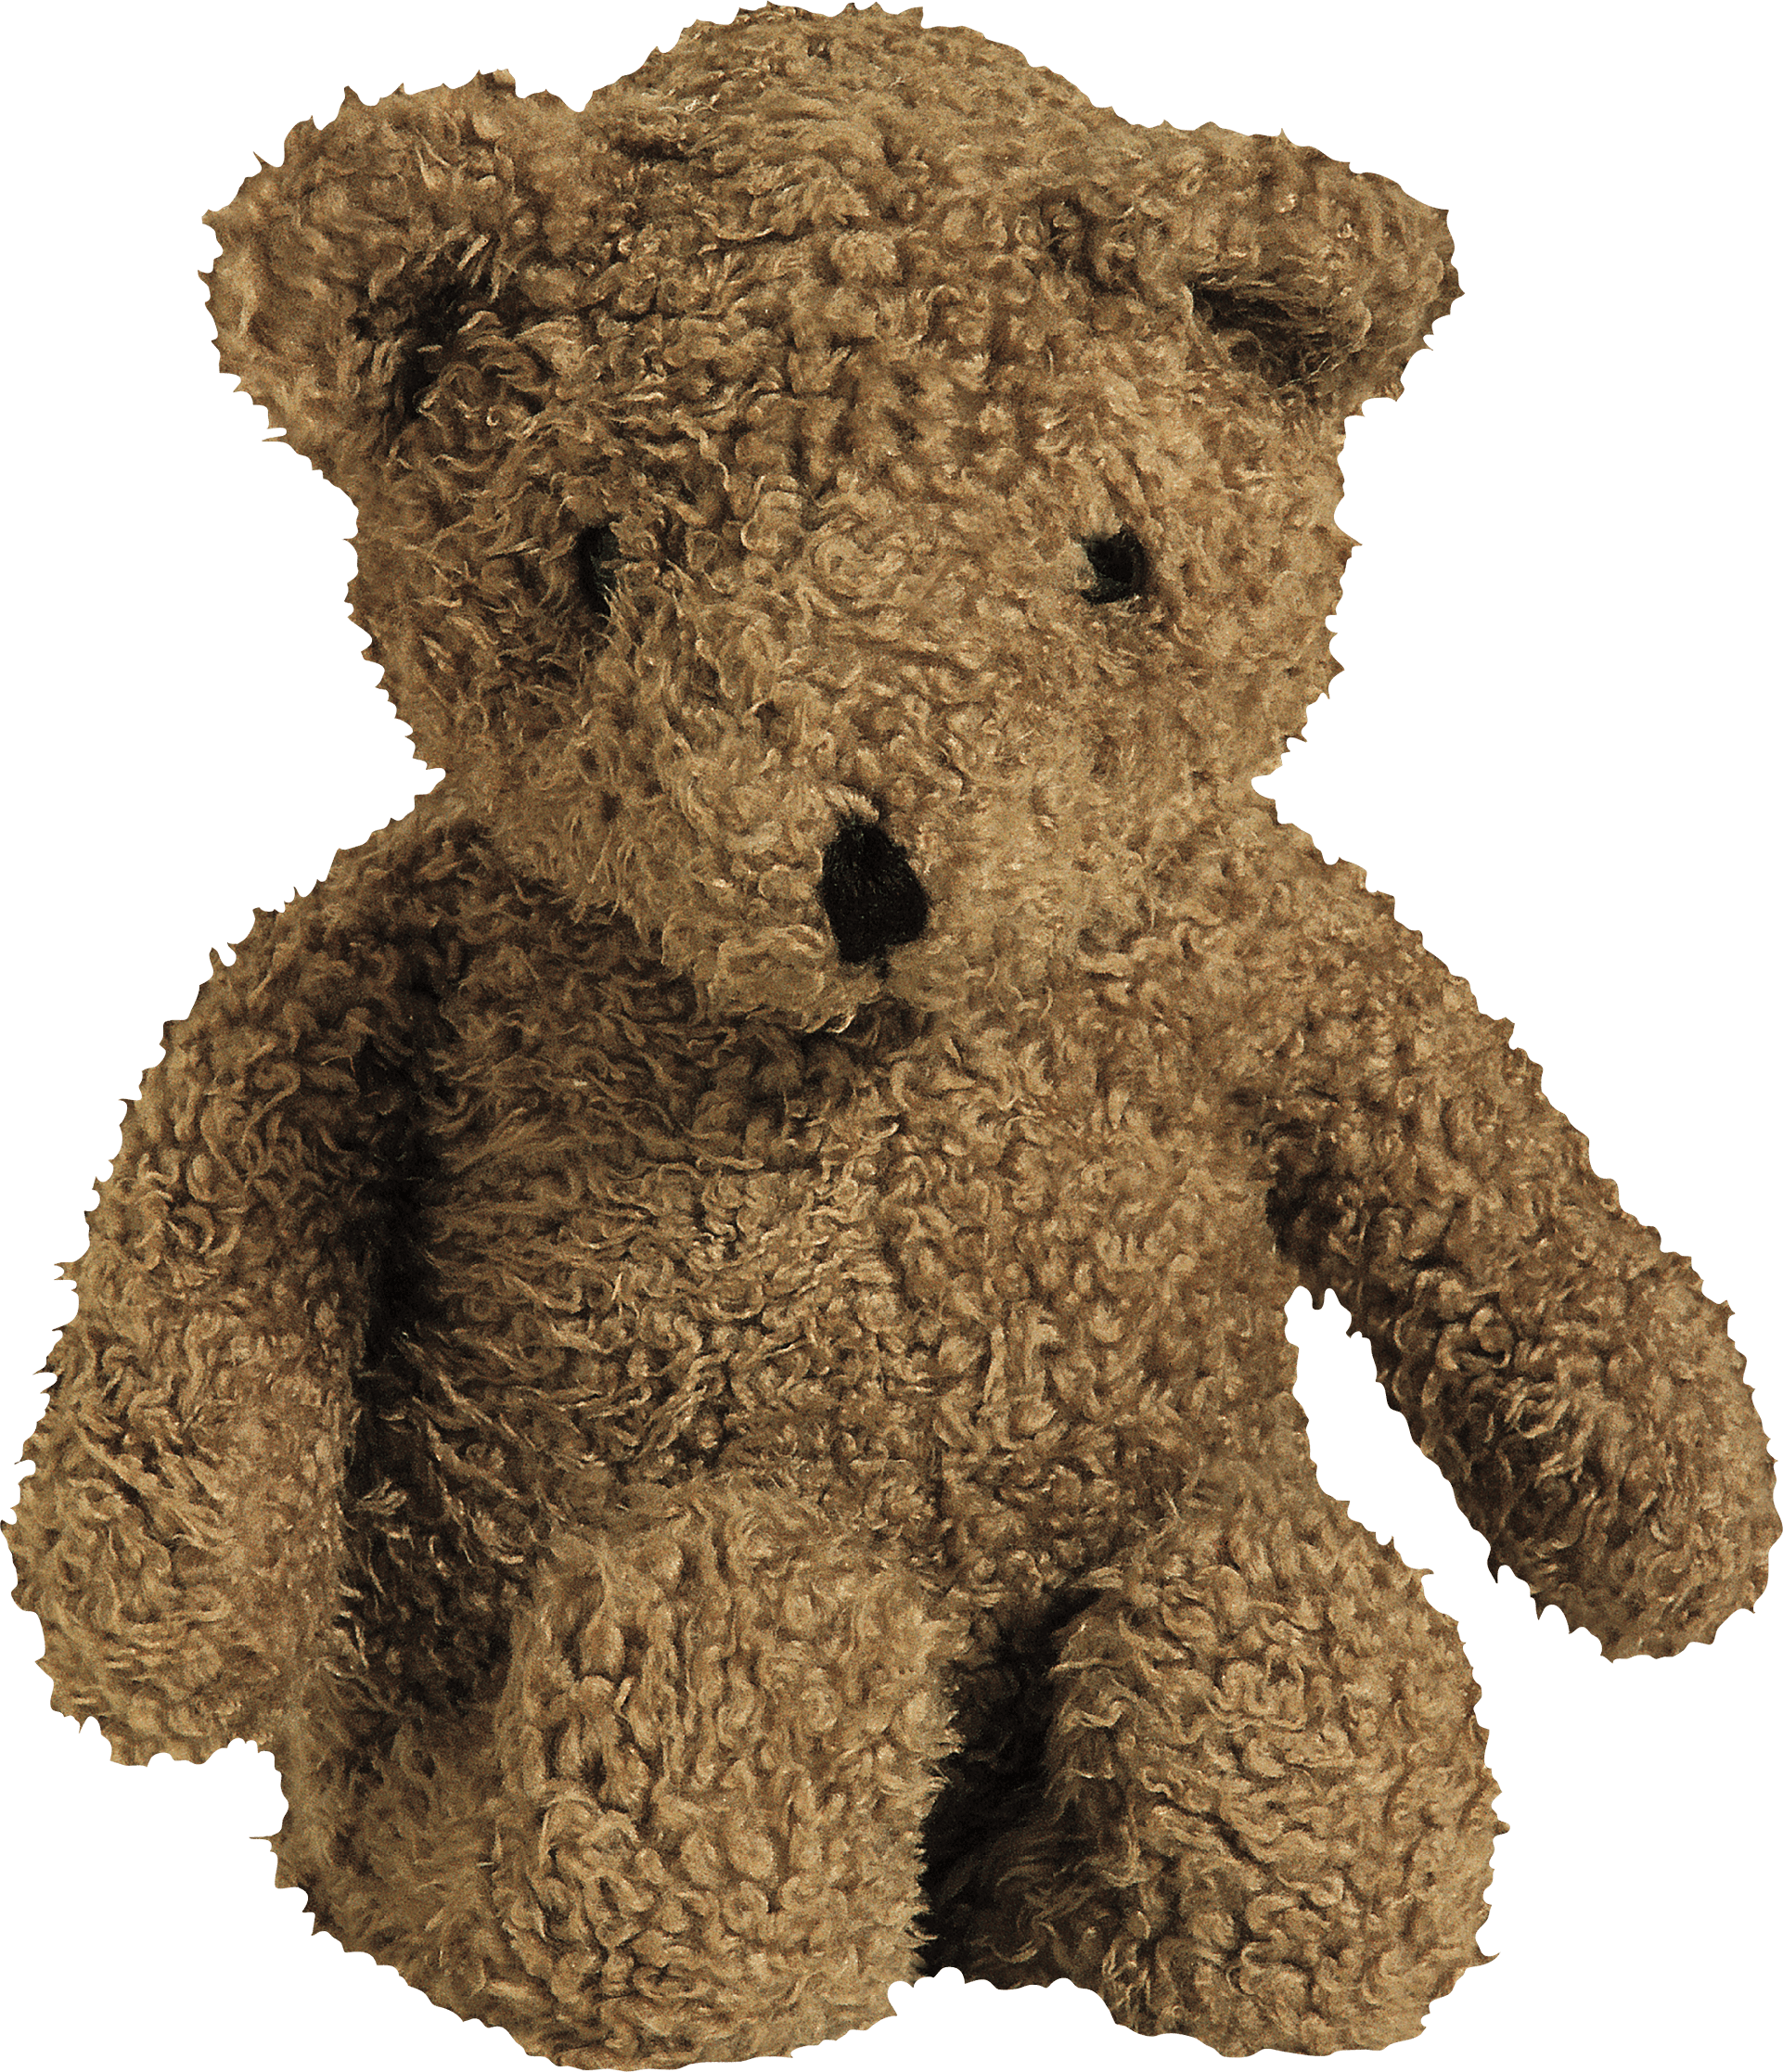 Download PNG image - Toy Bear Png Image 457 - Toy Bear PNG